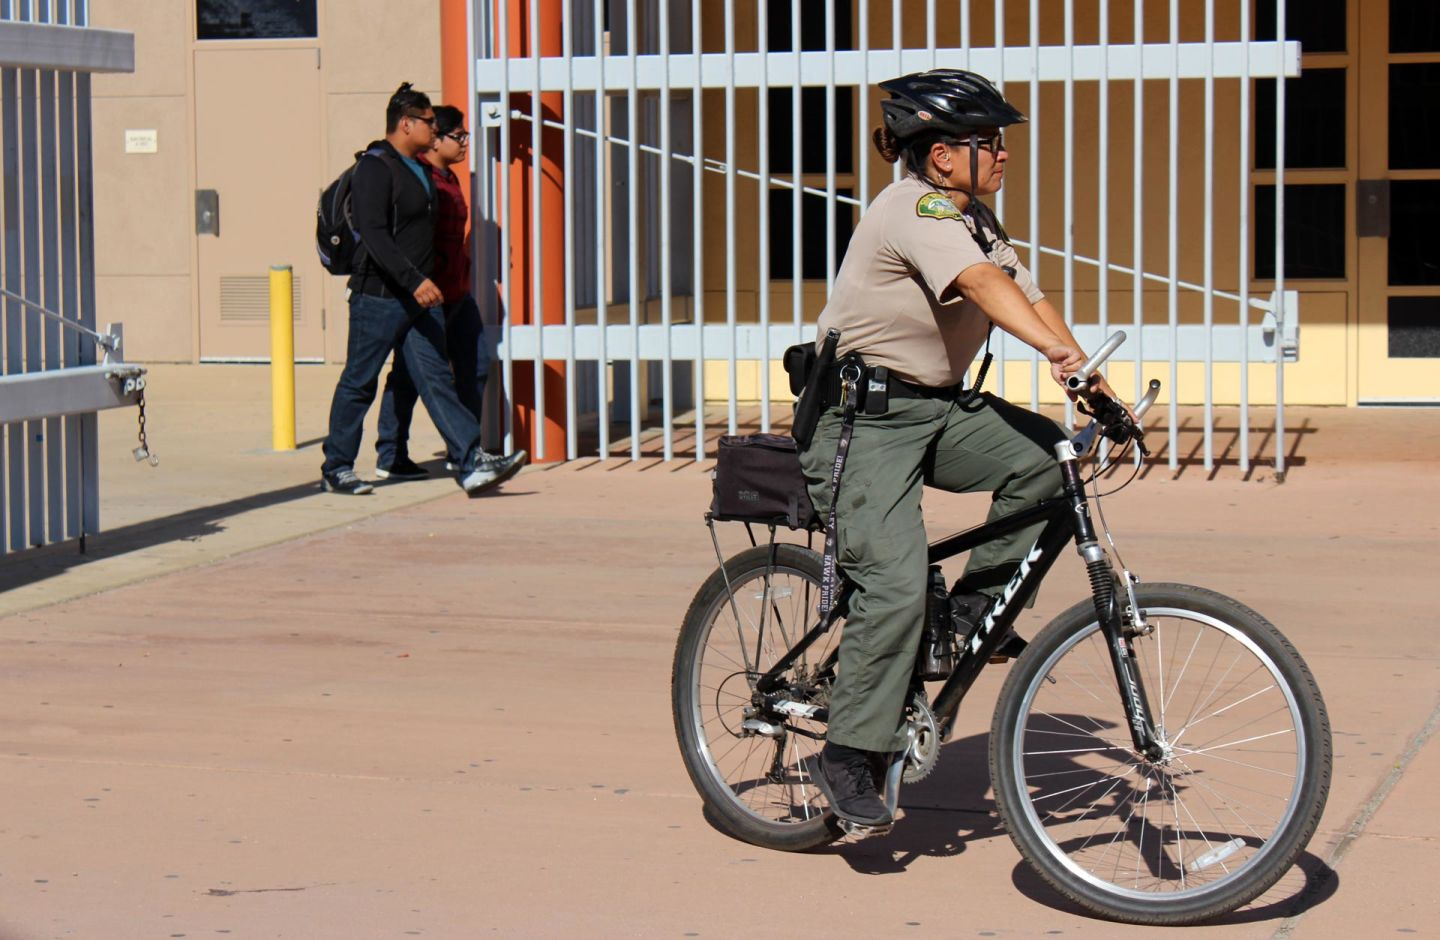 San Bernardino City Unified School District police officers get support from more than 50 campus security officers who patrol campuses and are trained in handcuffing and baton use.